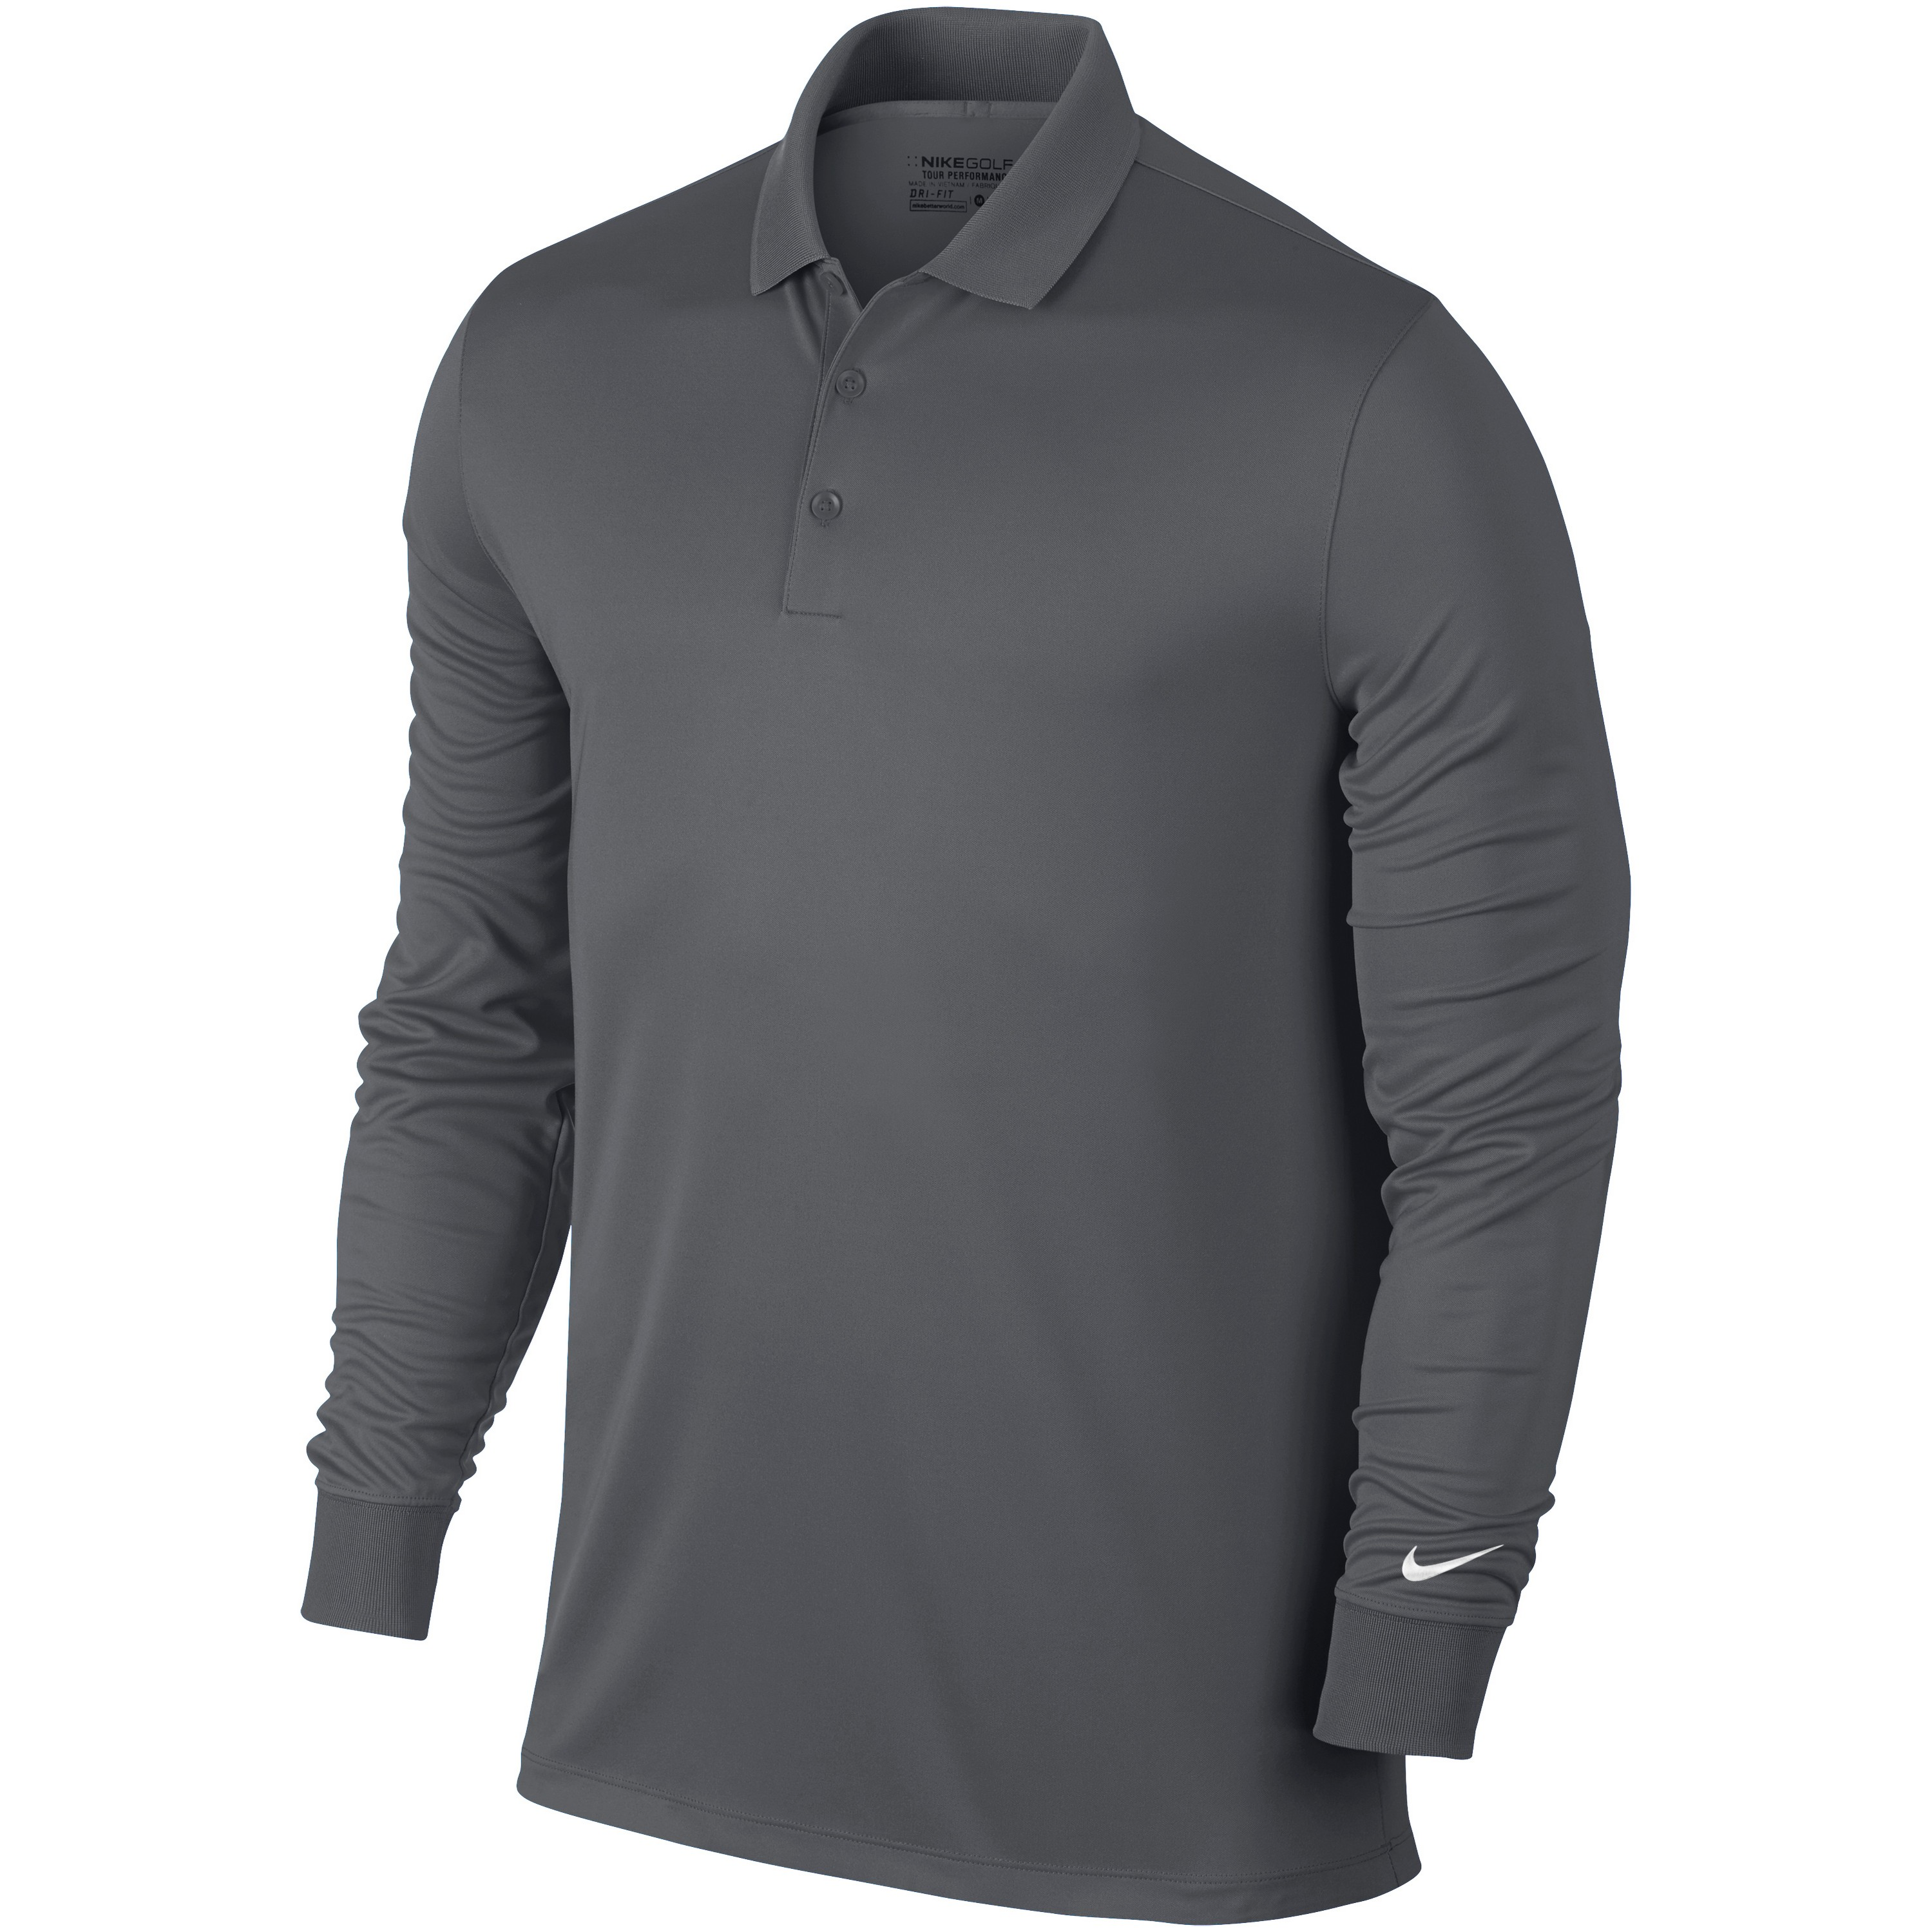 Nike Mens Victory Long Sleeve Polo Shirt | eBay